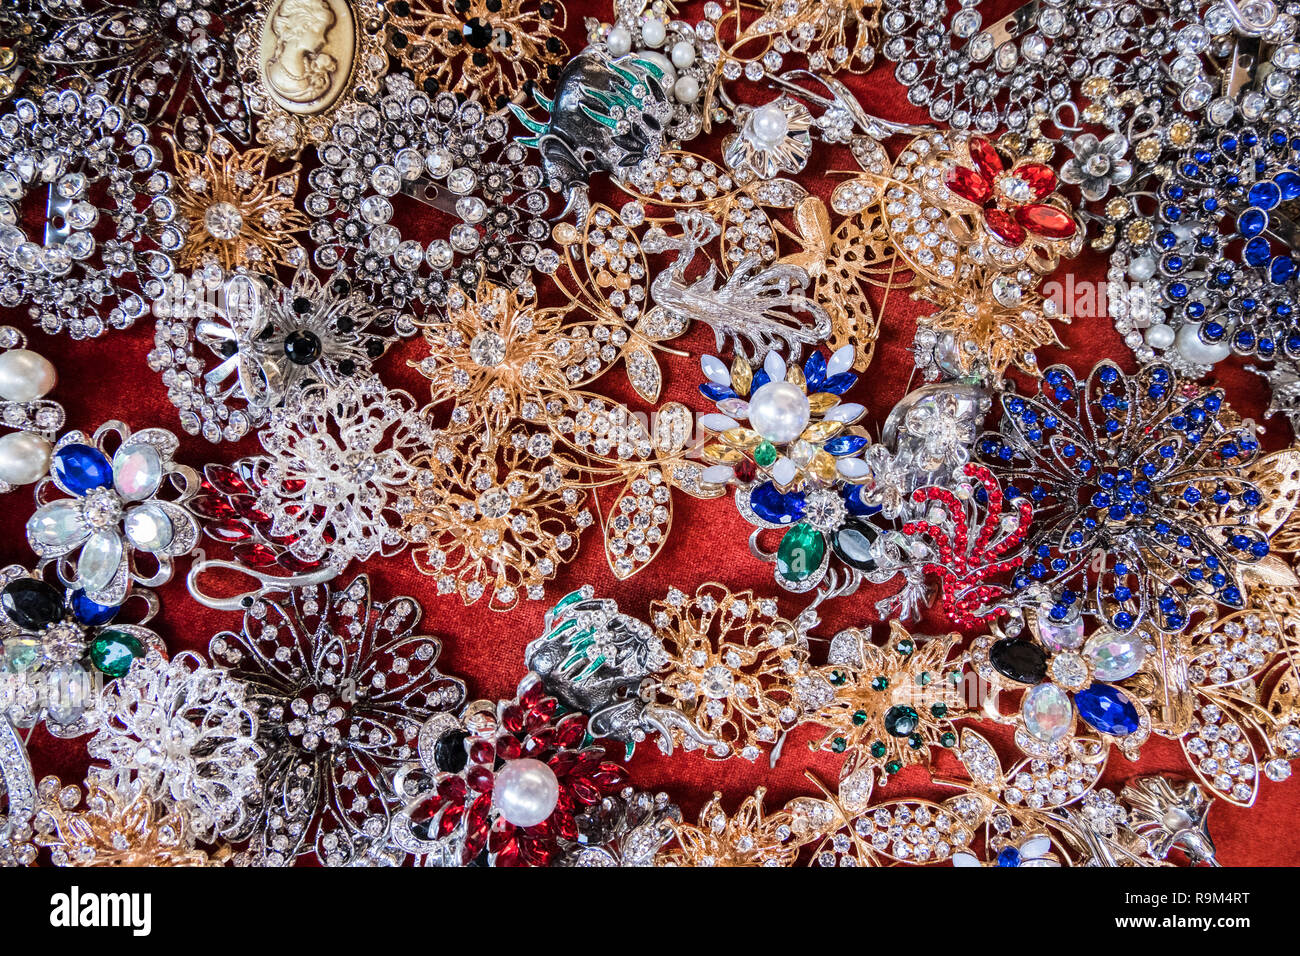 Wallpaper Background Of Jewelery Vintage Golden And Silver Stylish Brooches With Colorful Stones And Diamonds Fake Jewelery Stock Photo Alamy